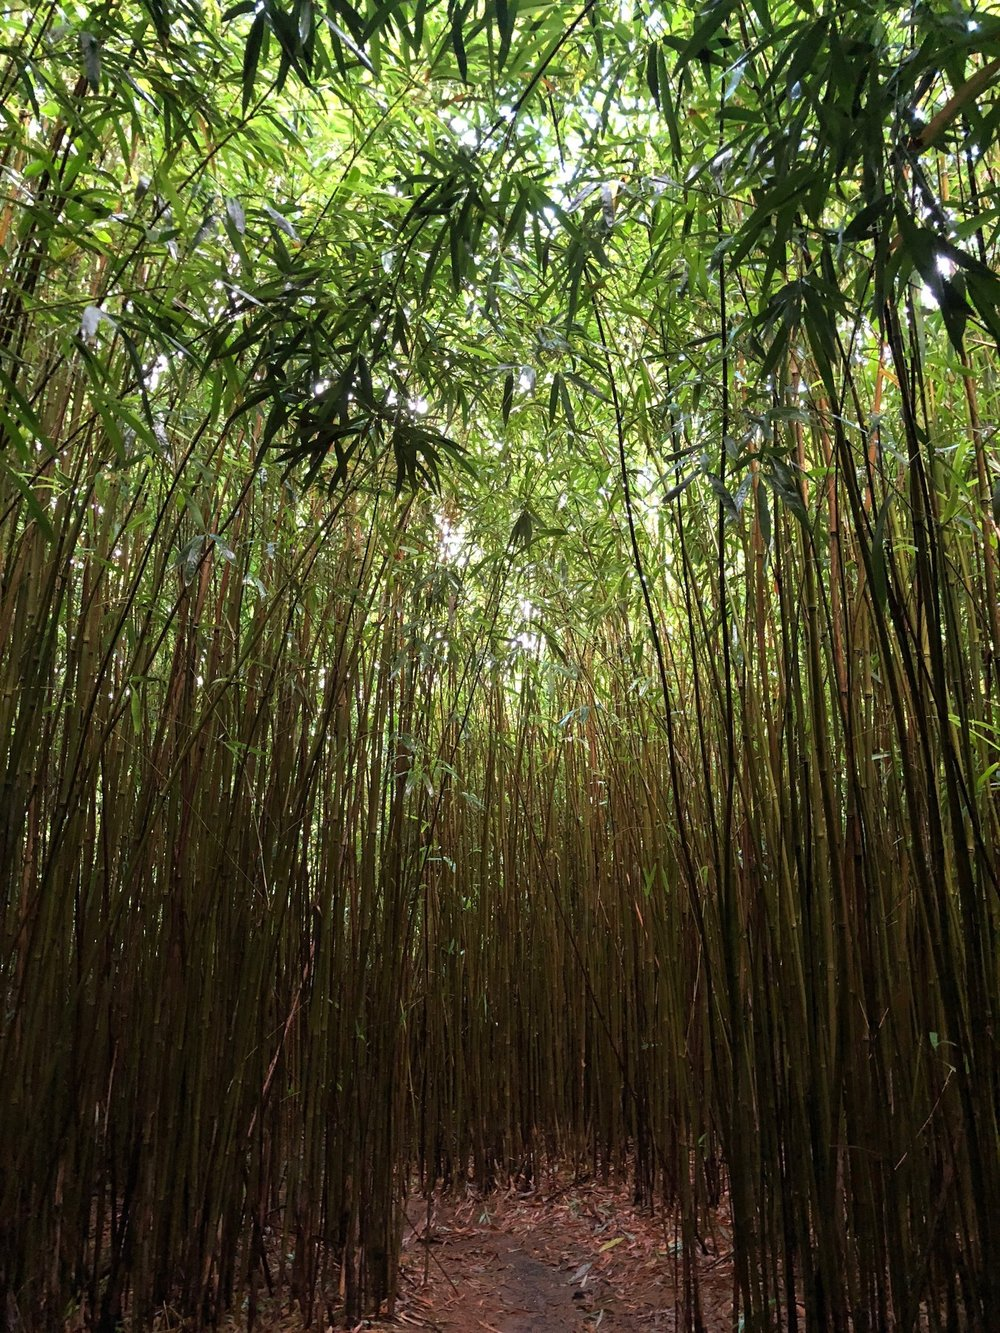 Bamboo forest on the Road to Hana, Maui.